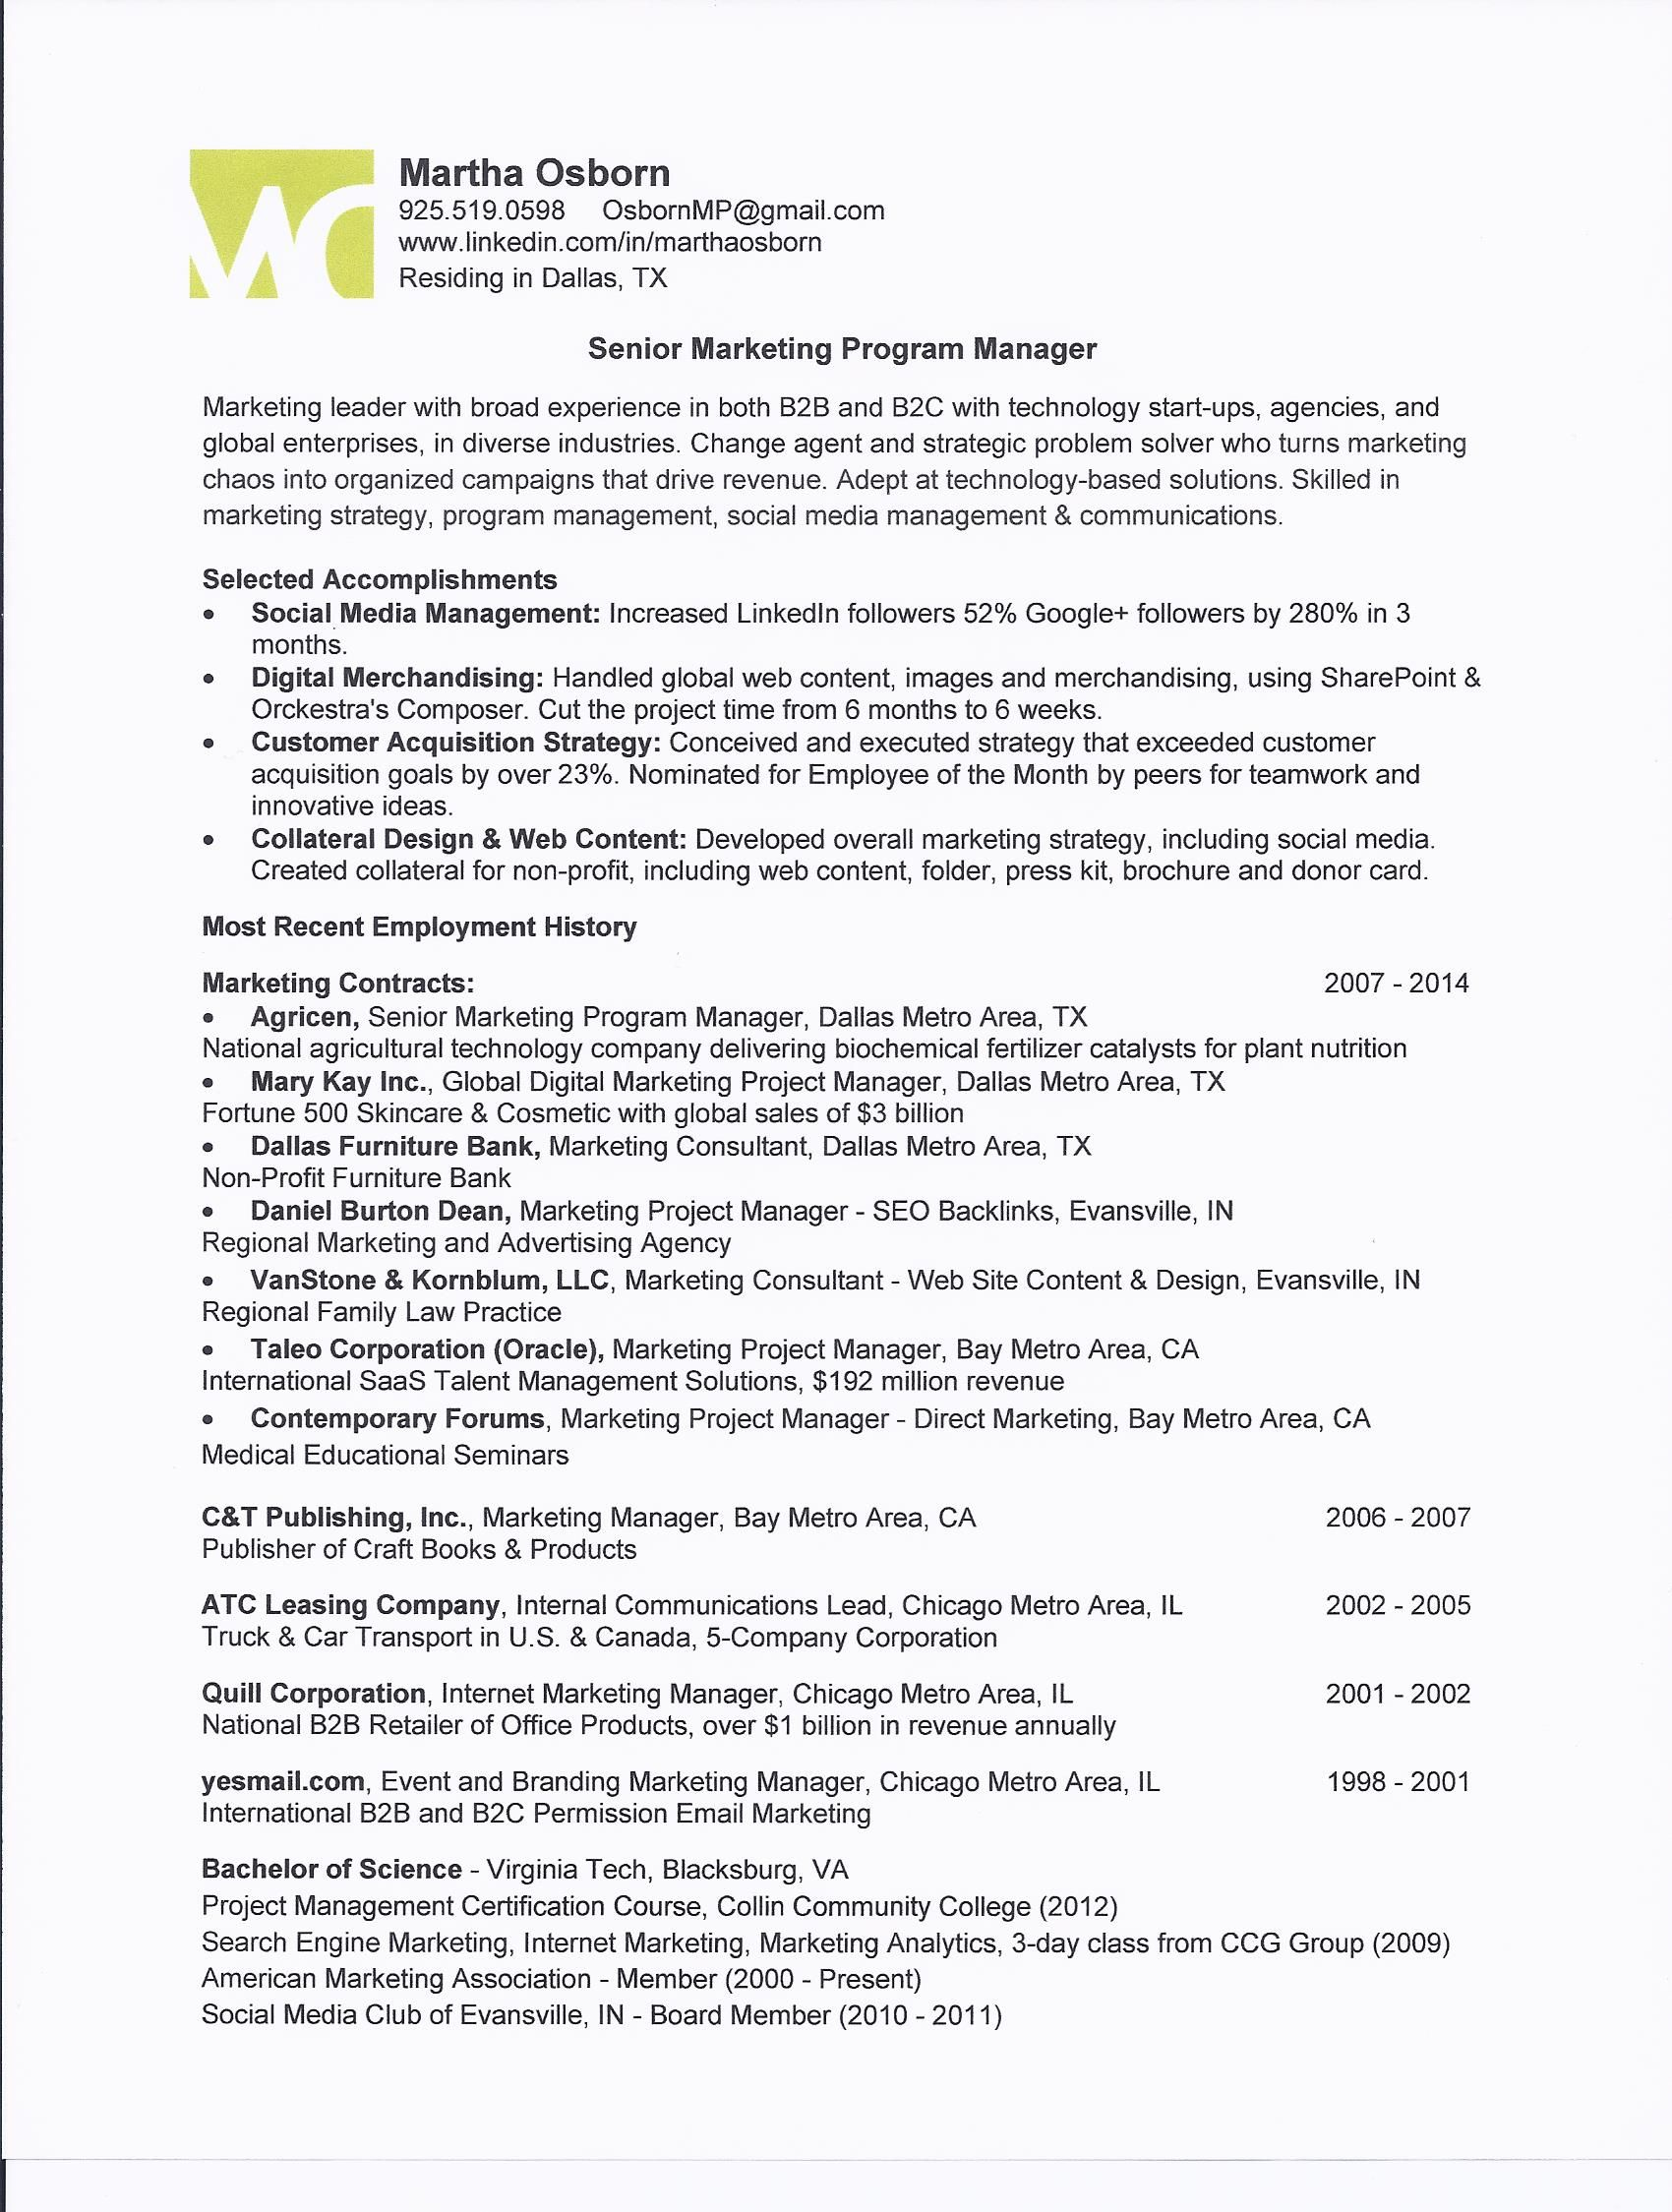 Marketing Program Manager One Page Resume For Martha